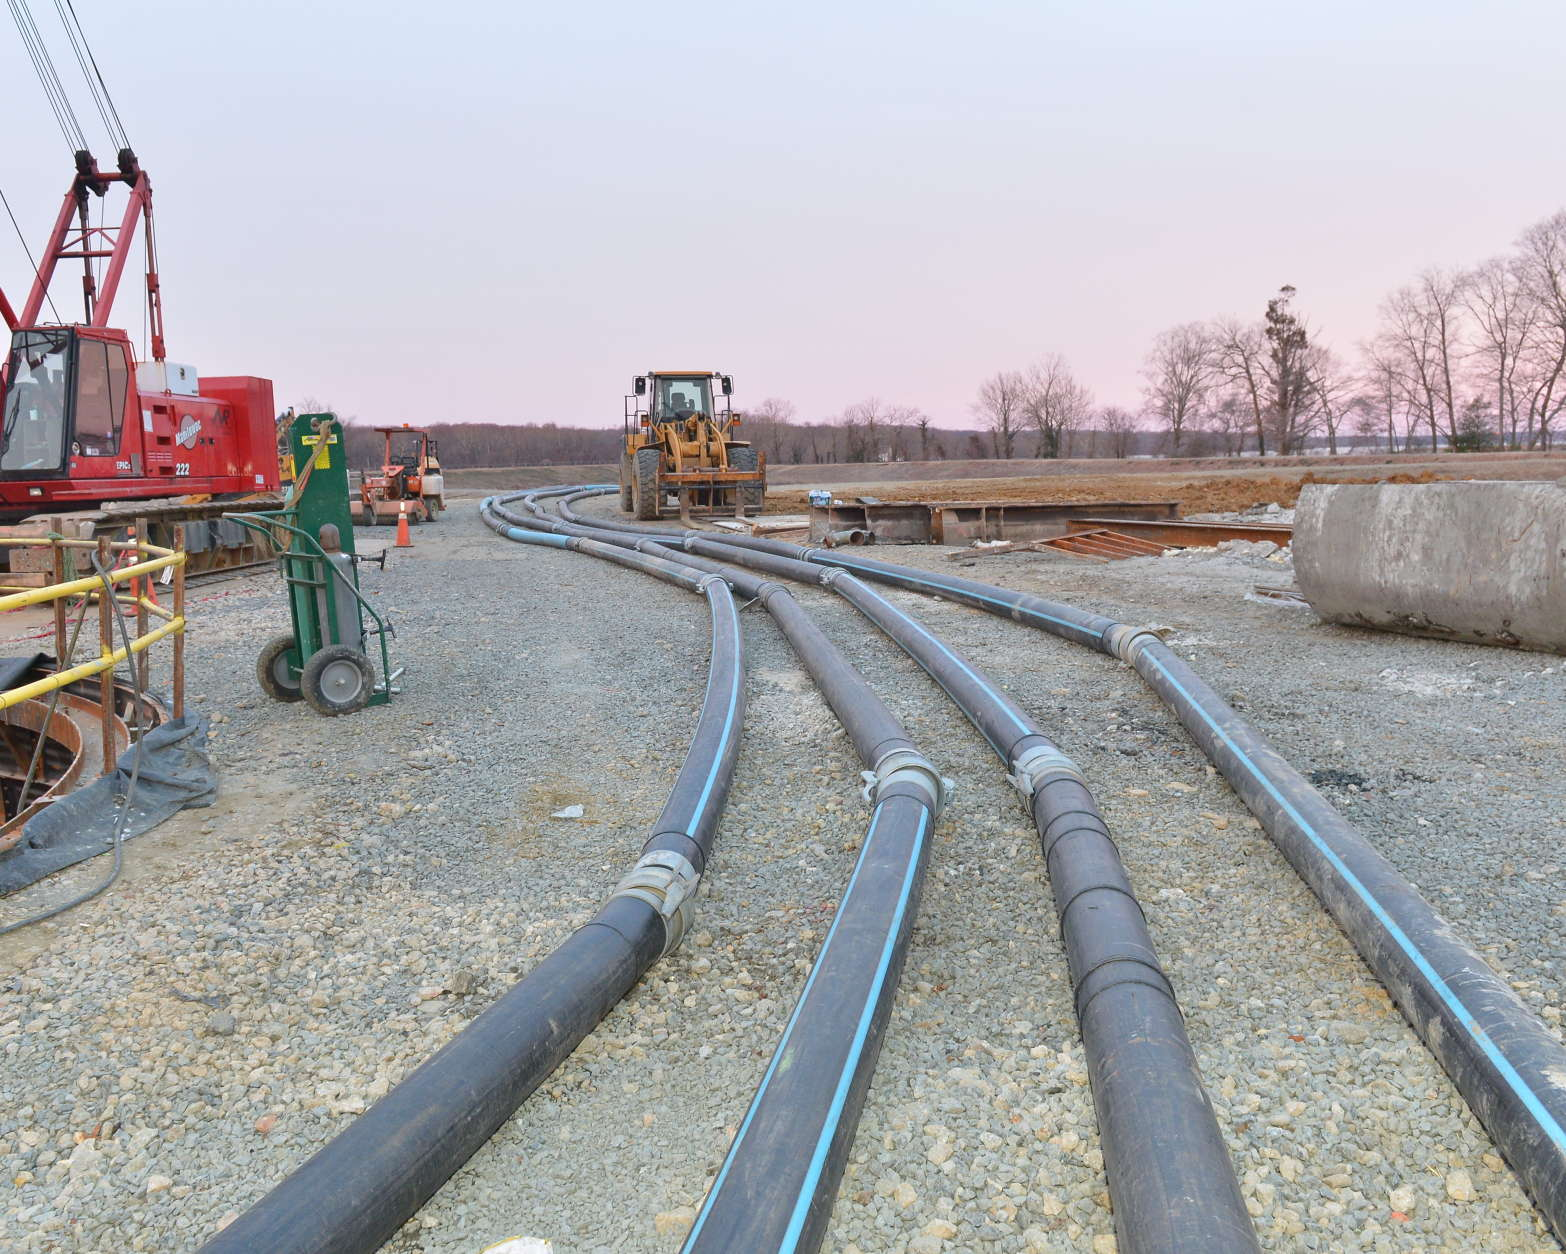 These pipes pull sewage into retention basins. (Courtesy WSSC)